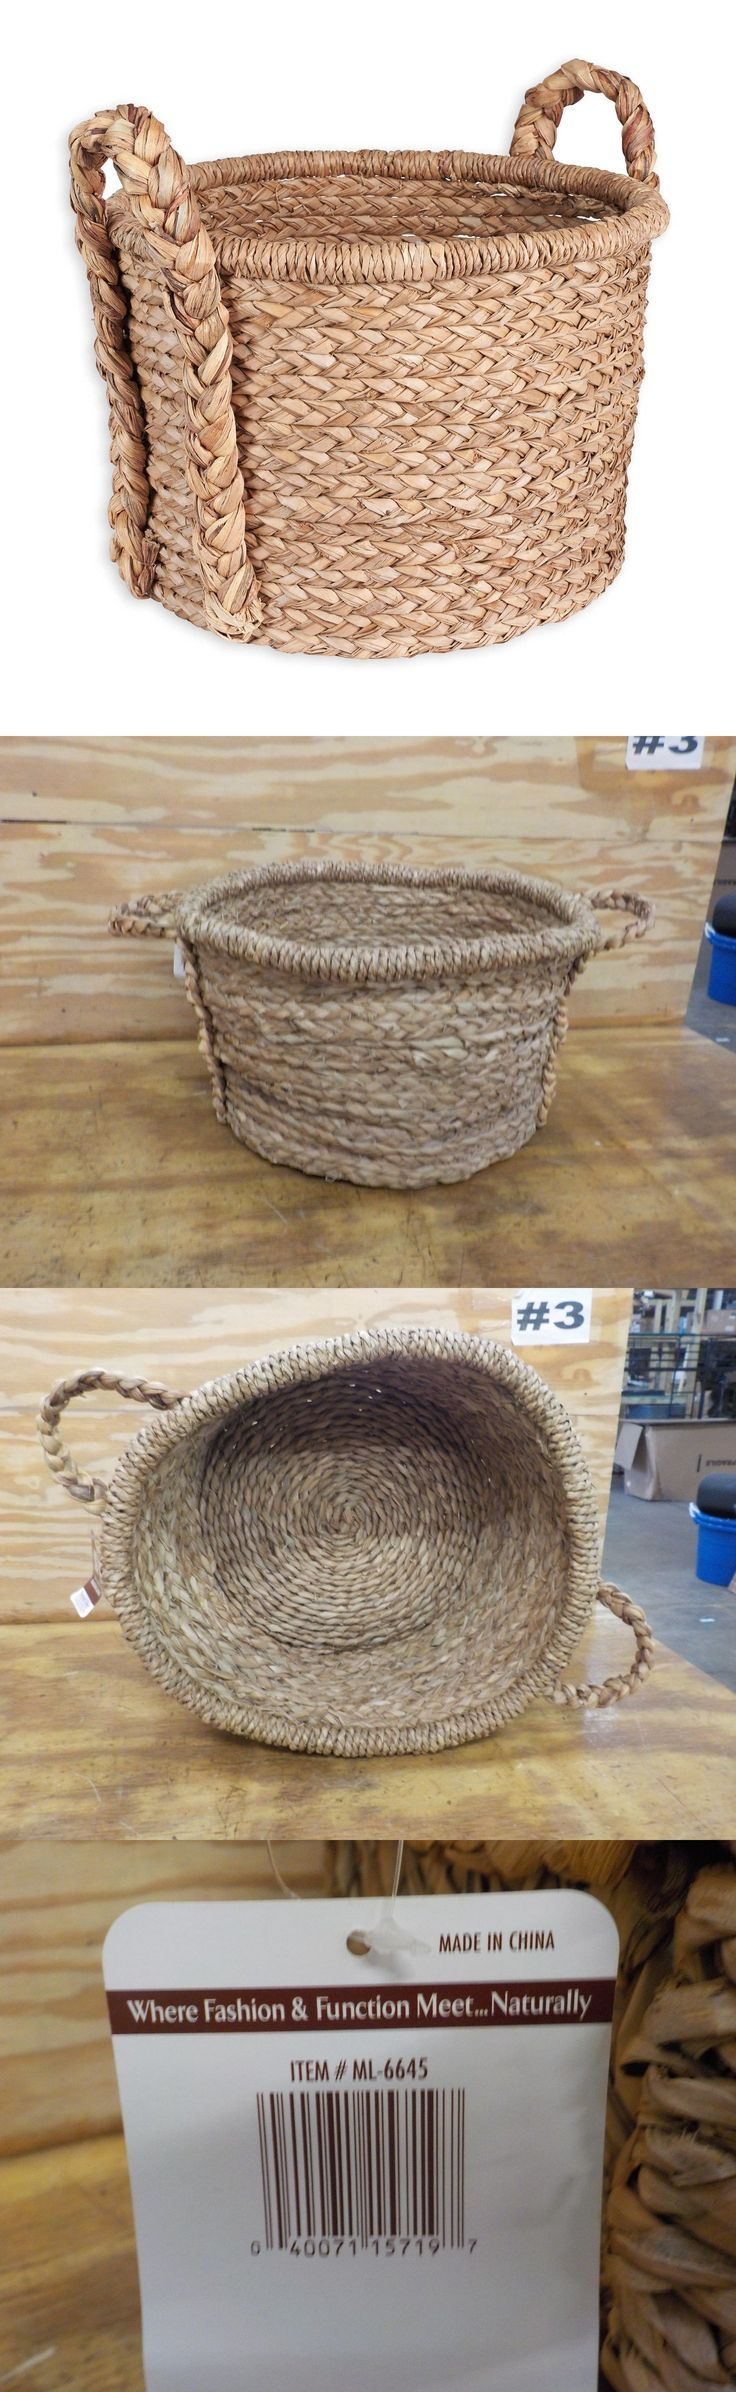 Baskets 125072: Household Essentials Large Wicker Floor Storage Basket With Braided Handle -> BUY IT NOW ONLY: $65.99 on eBay!